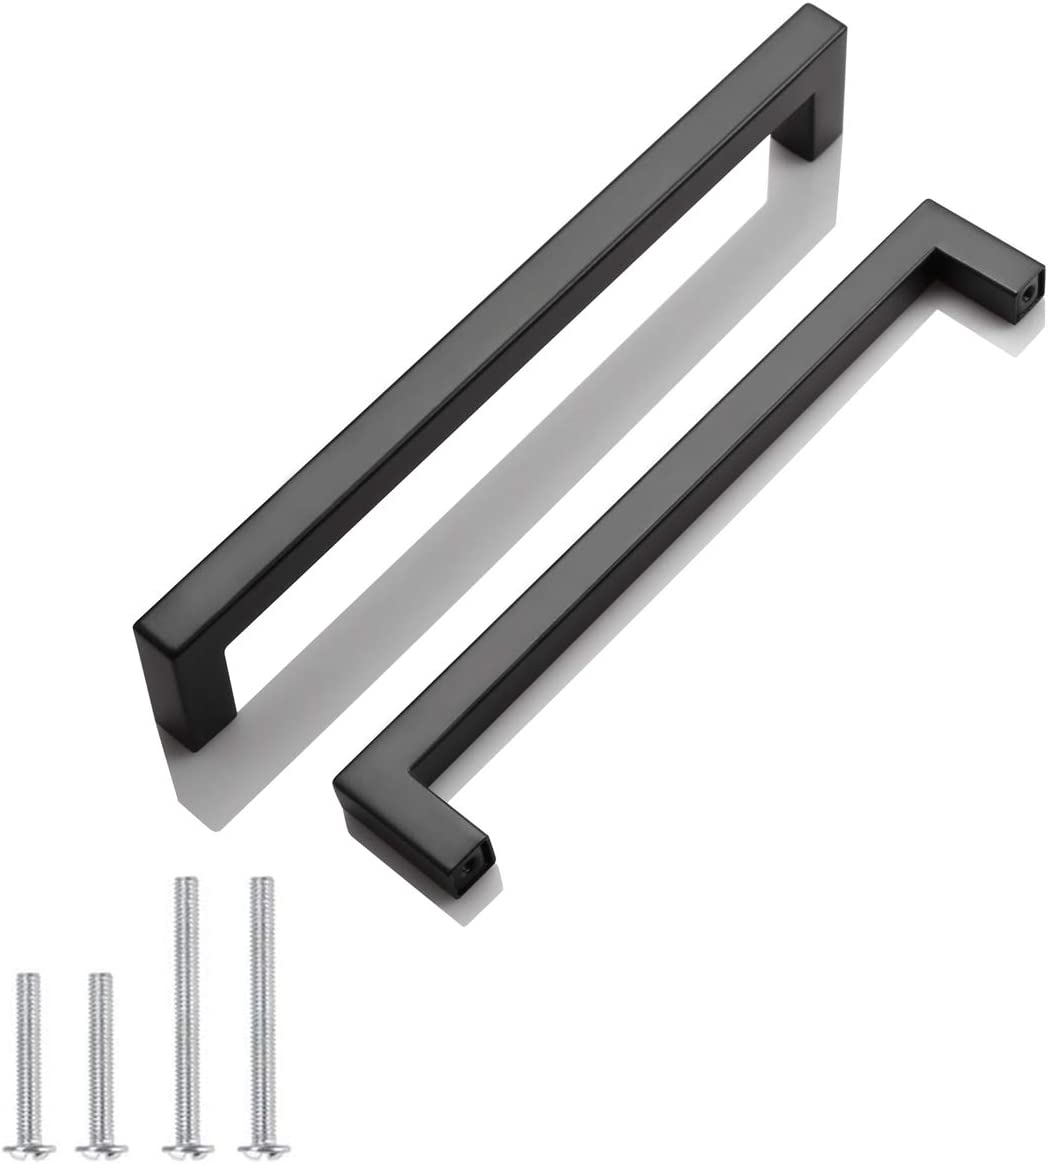 30 Pack Probrico Black Stainless Steel Square Corner Bar Cabinet Door Handles Drawer Pulls Knobs 1/2 in Width Hole Centers 7-1/2 inch 192mm